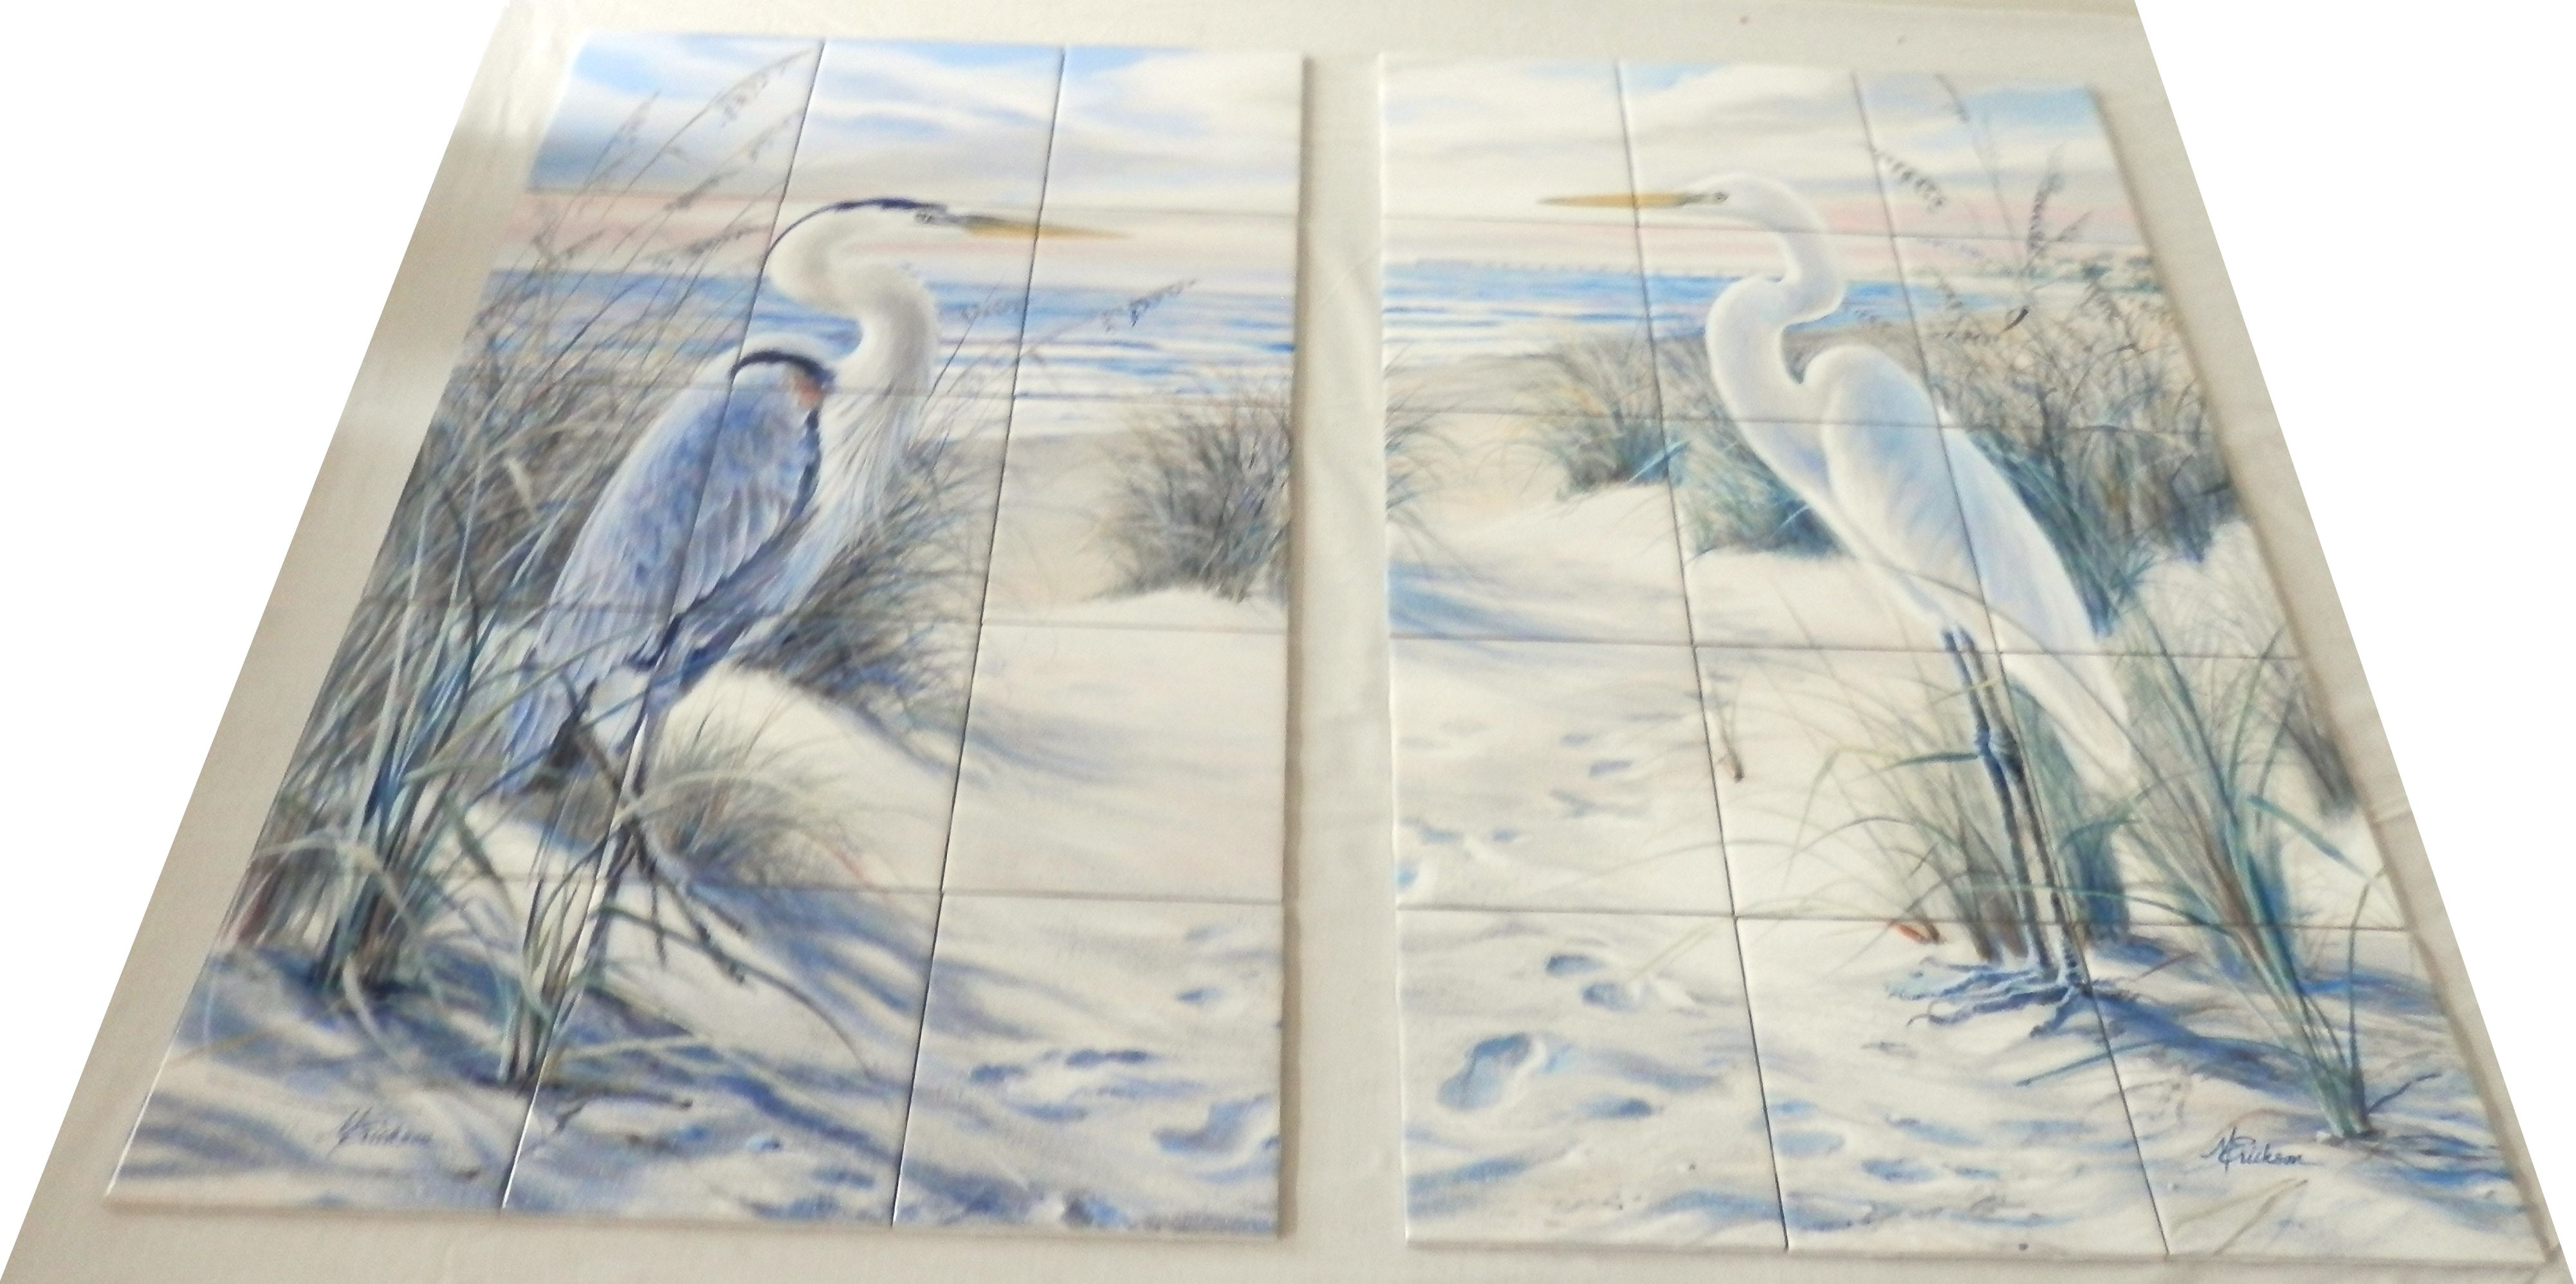 Egret Beach & Heron Tile Mural Images of waterfowl on tiles are ...